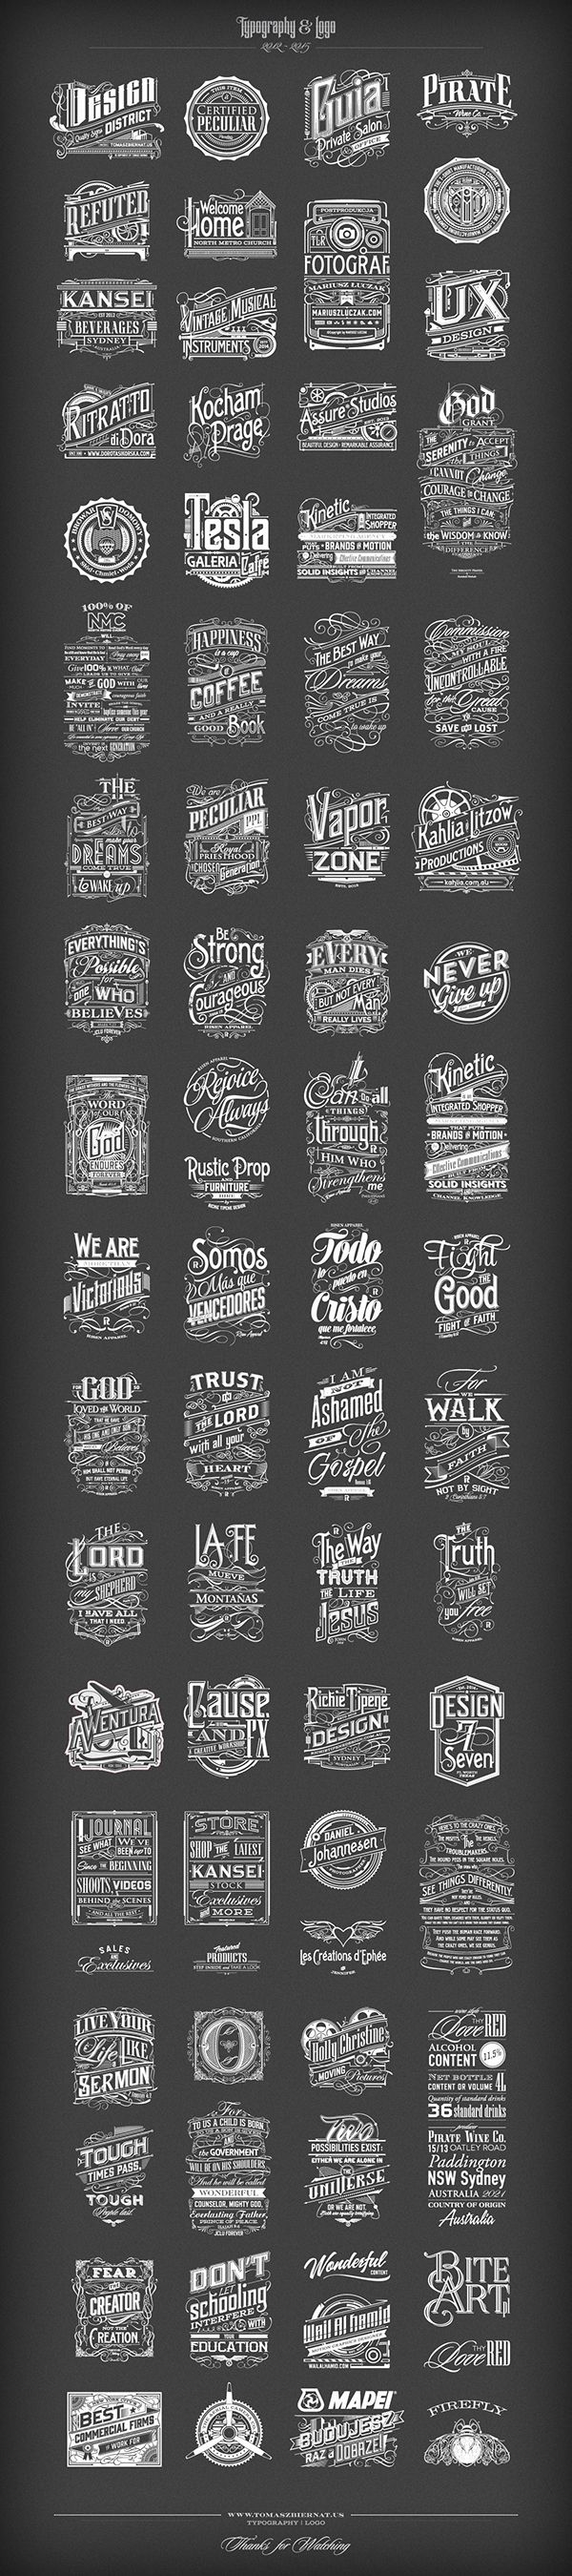 Some Typography | Logo 2012-2015 :)